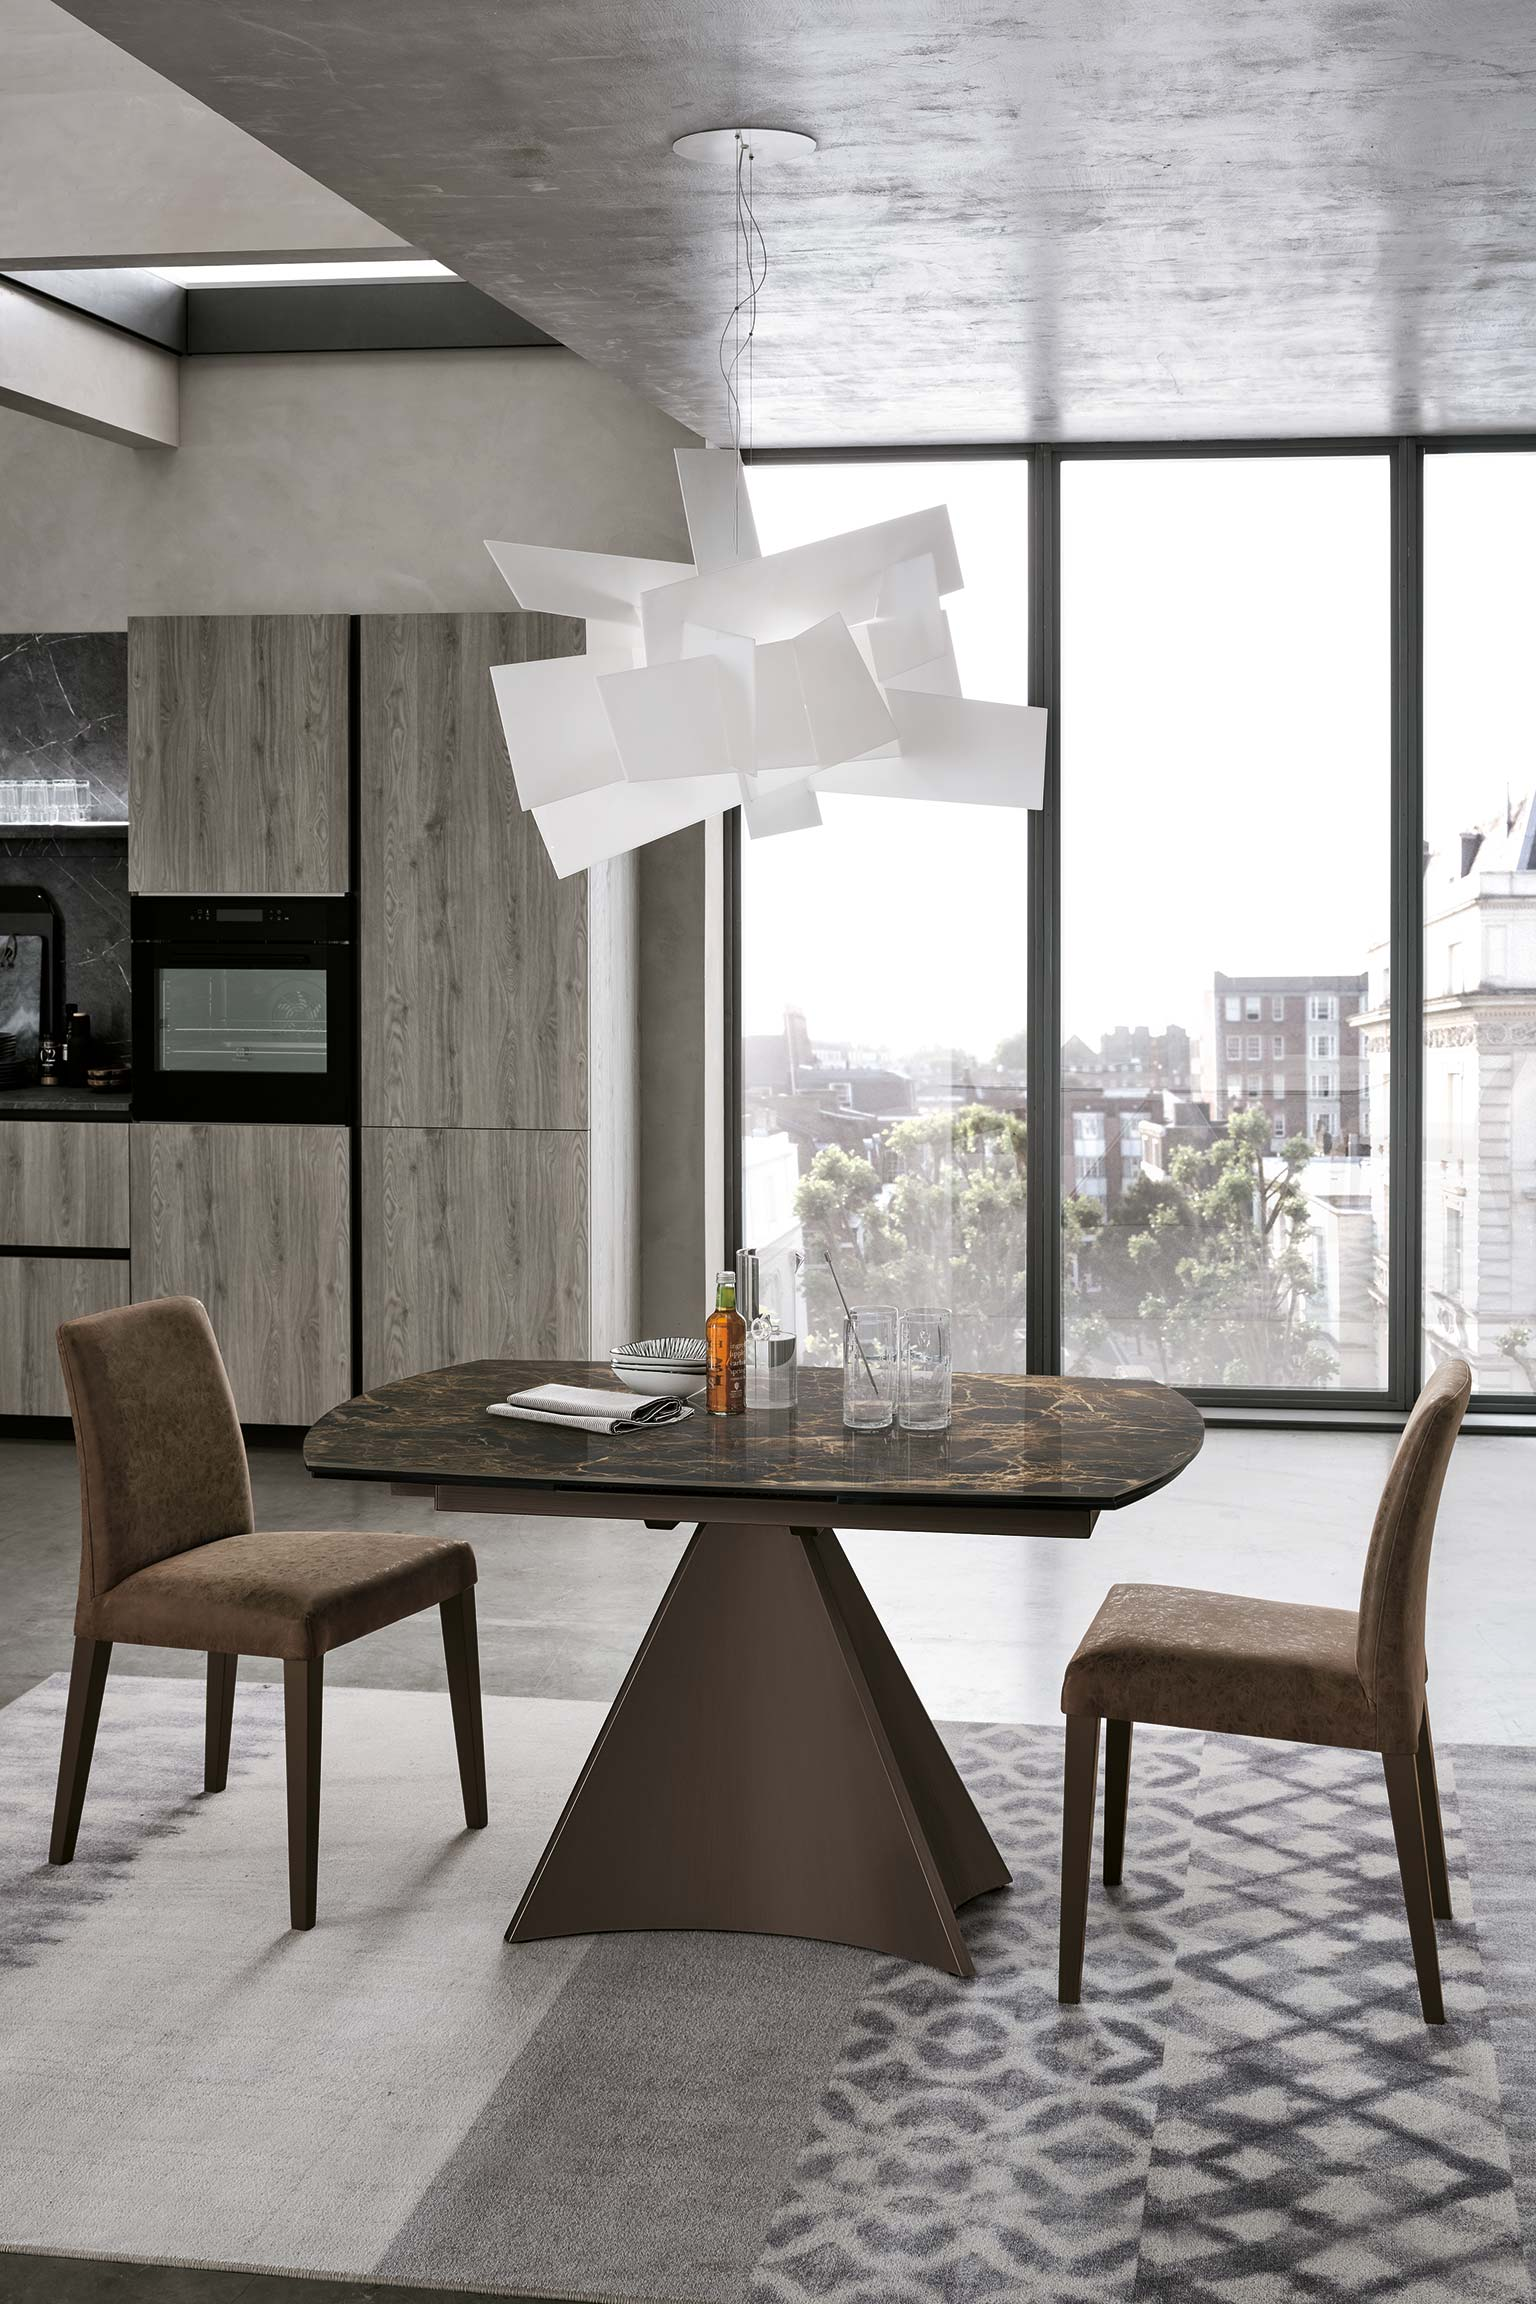 table, modern table, wooden table, trapezi, chairs, brown chairs, karekles, accessories, dining table, kitchen table, andreotti, andreotti furniture, epipla, furniture, limassol, cyprus